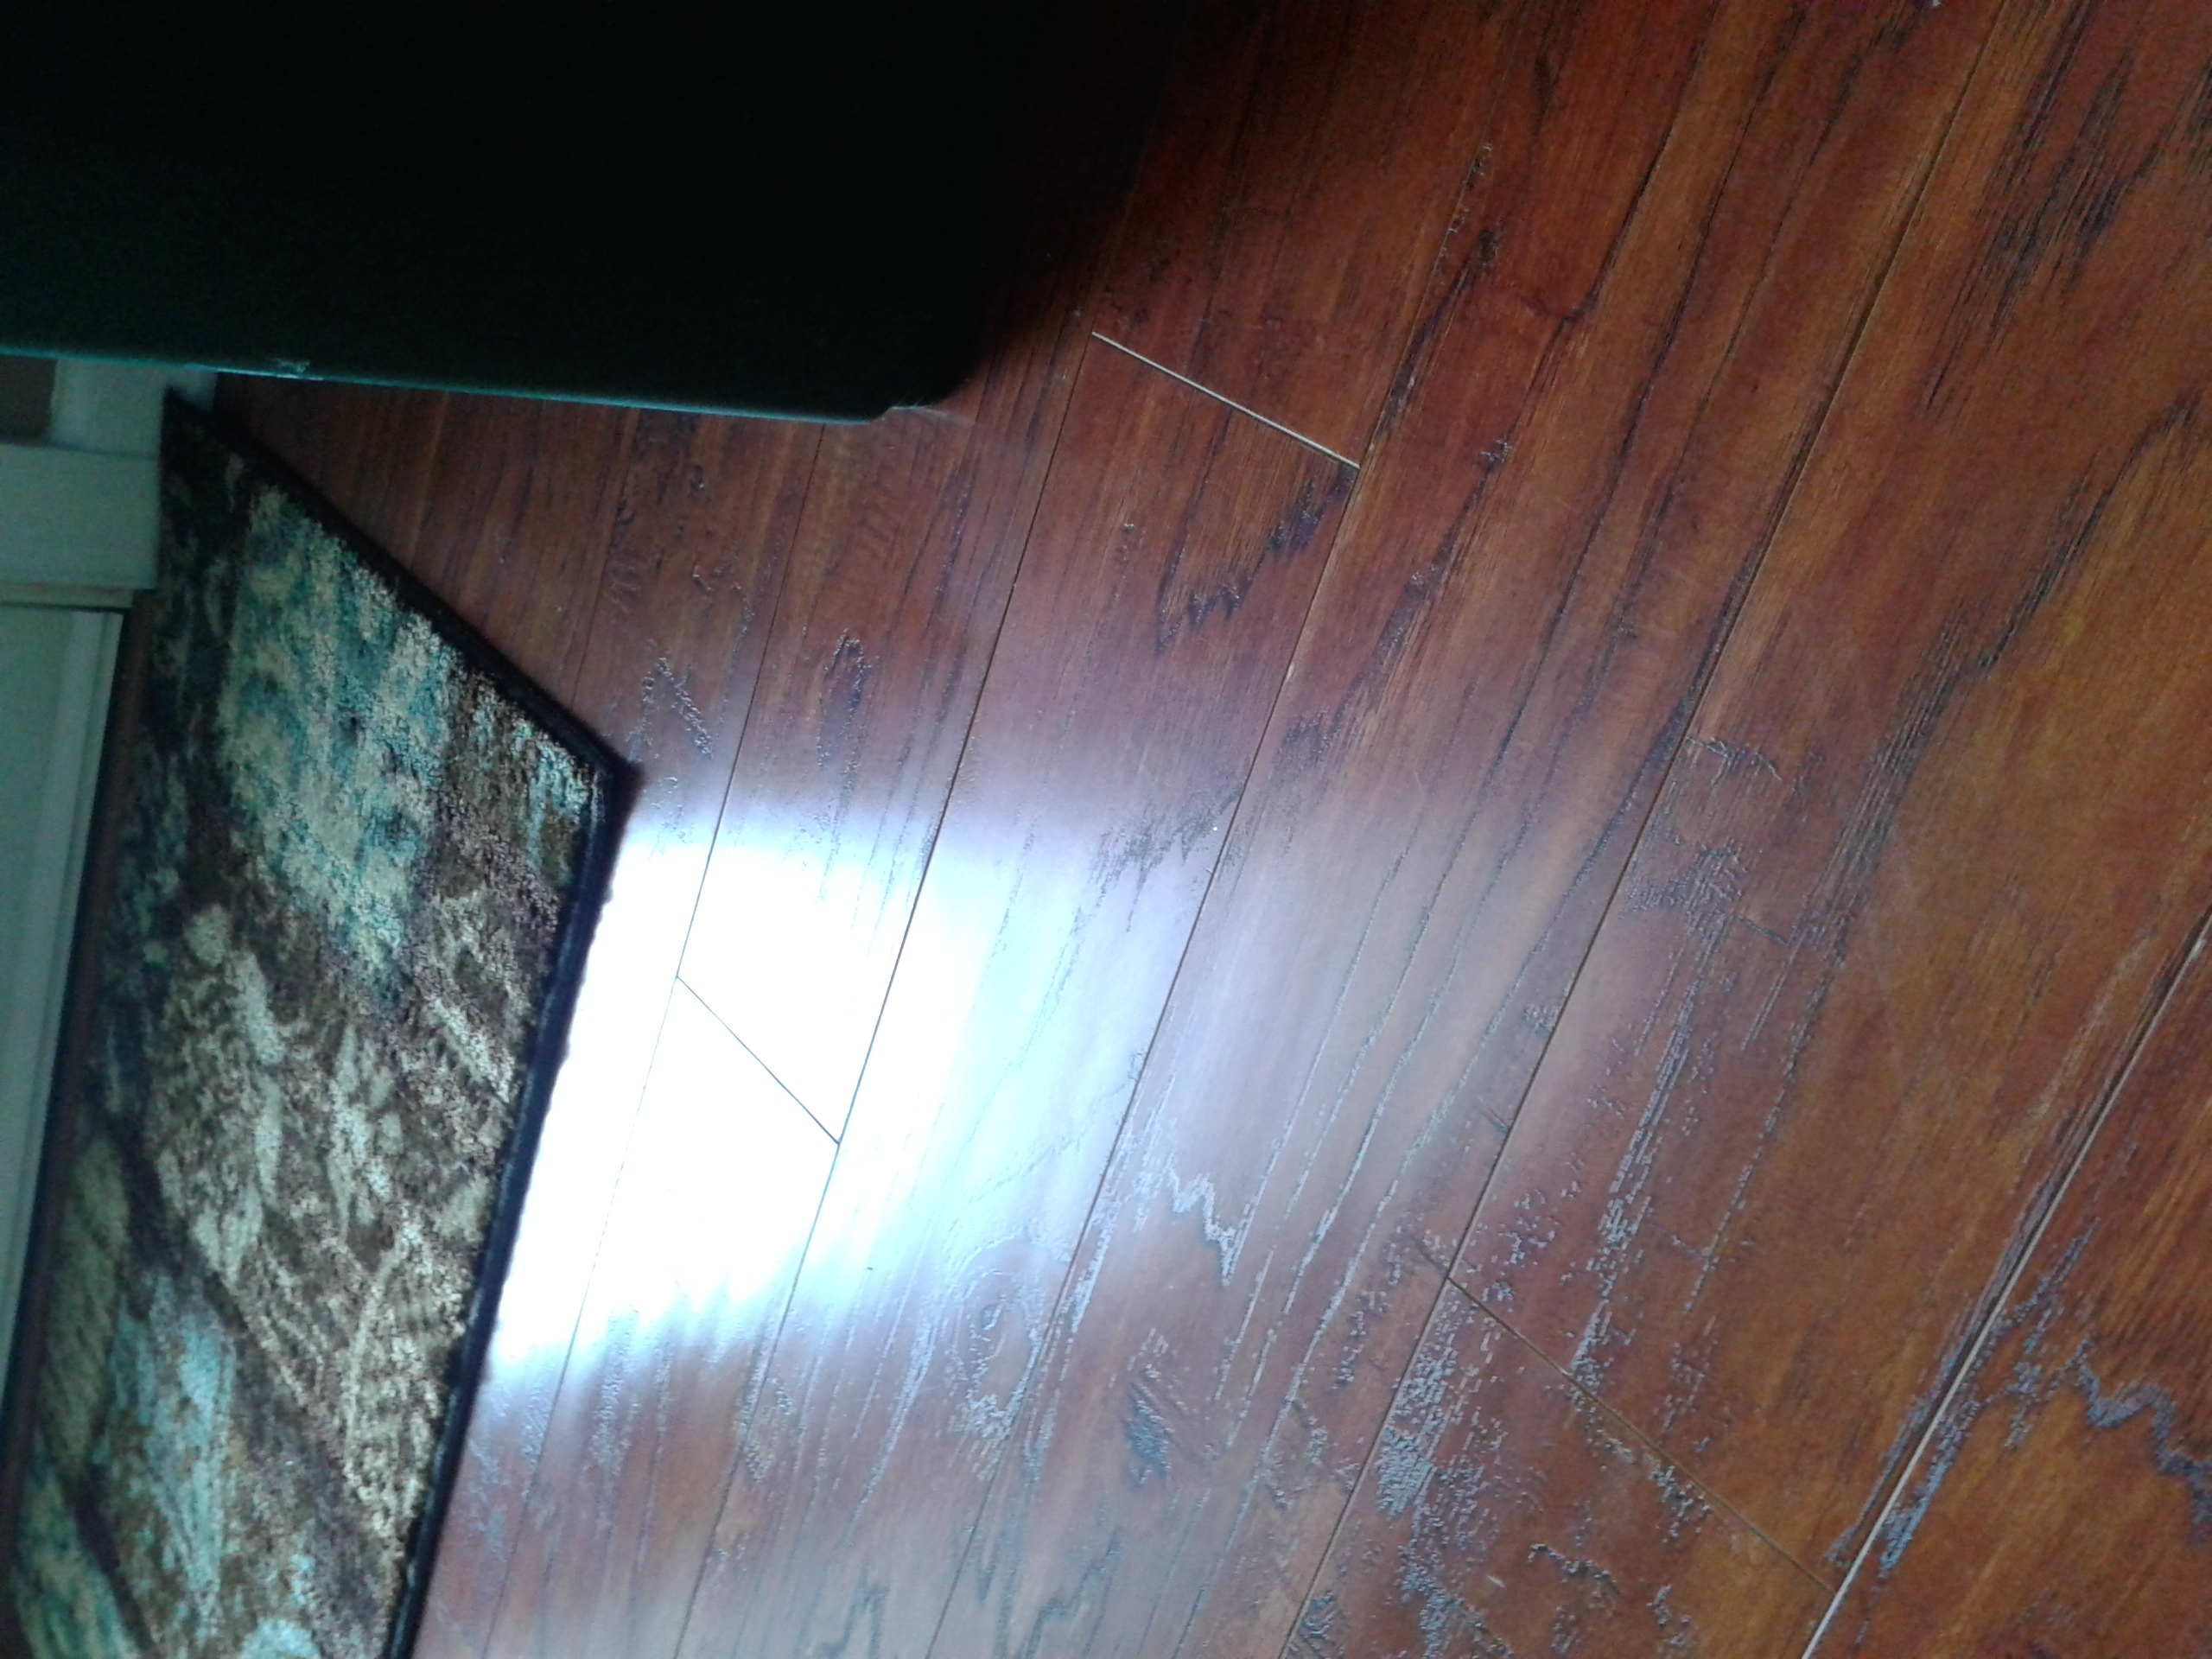 The Best Way To Clean Hardwood Floors It 39 S Also The